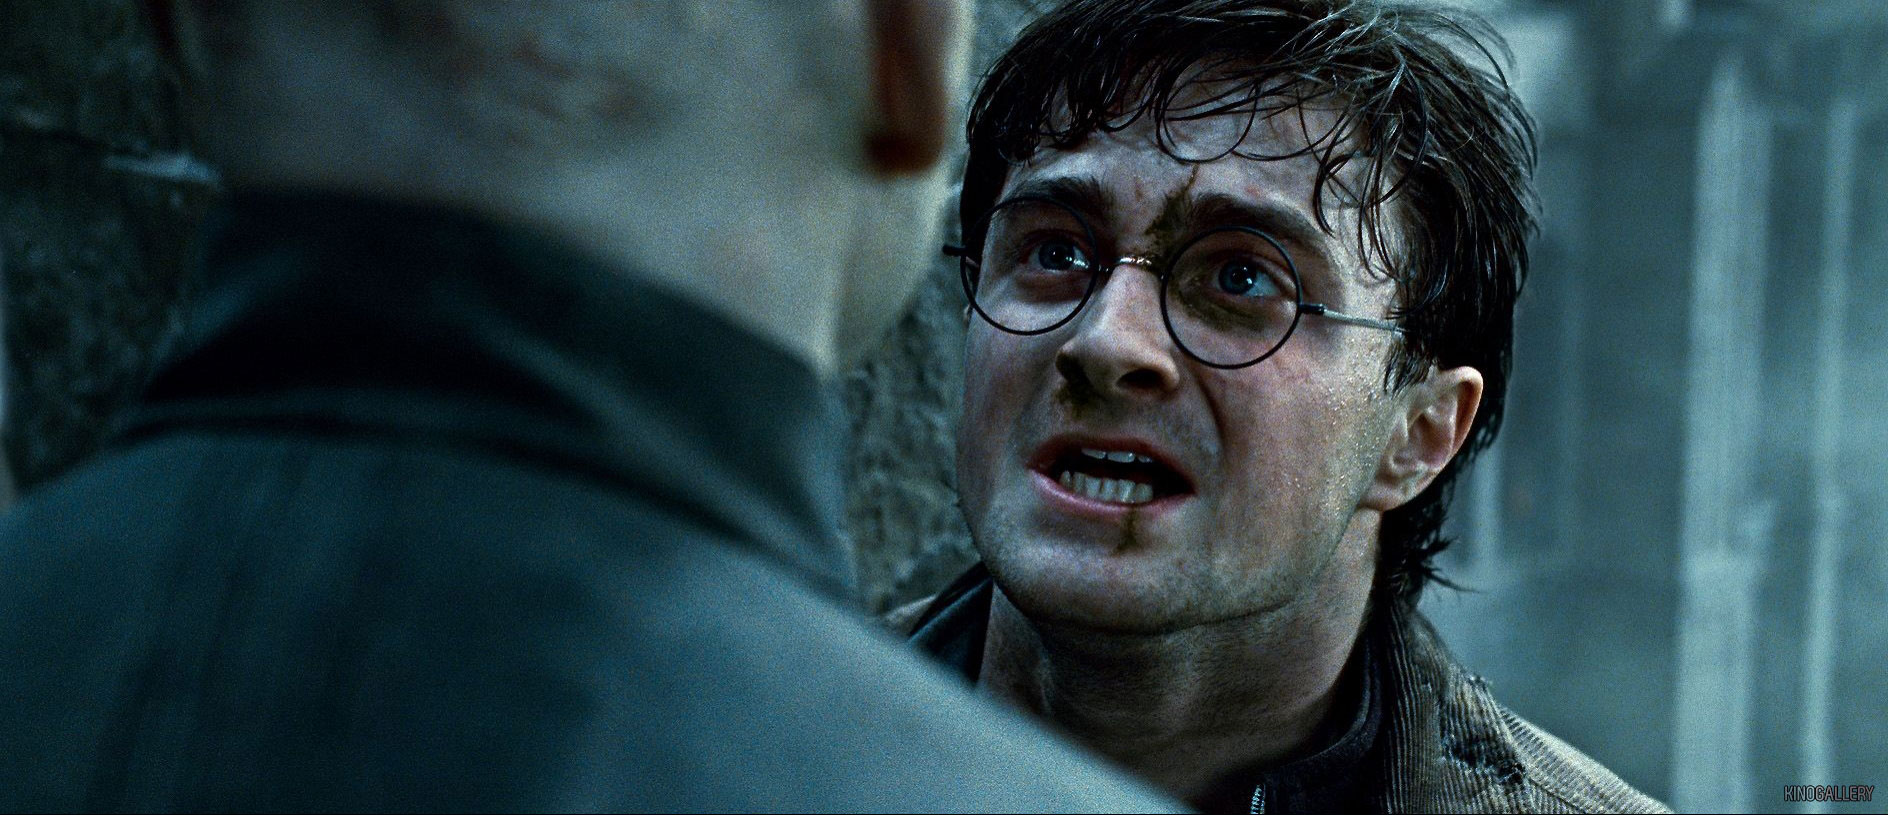 Bchwood/Three New Stills from Deathly Hallows Part 2